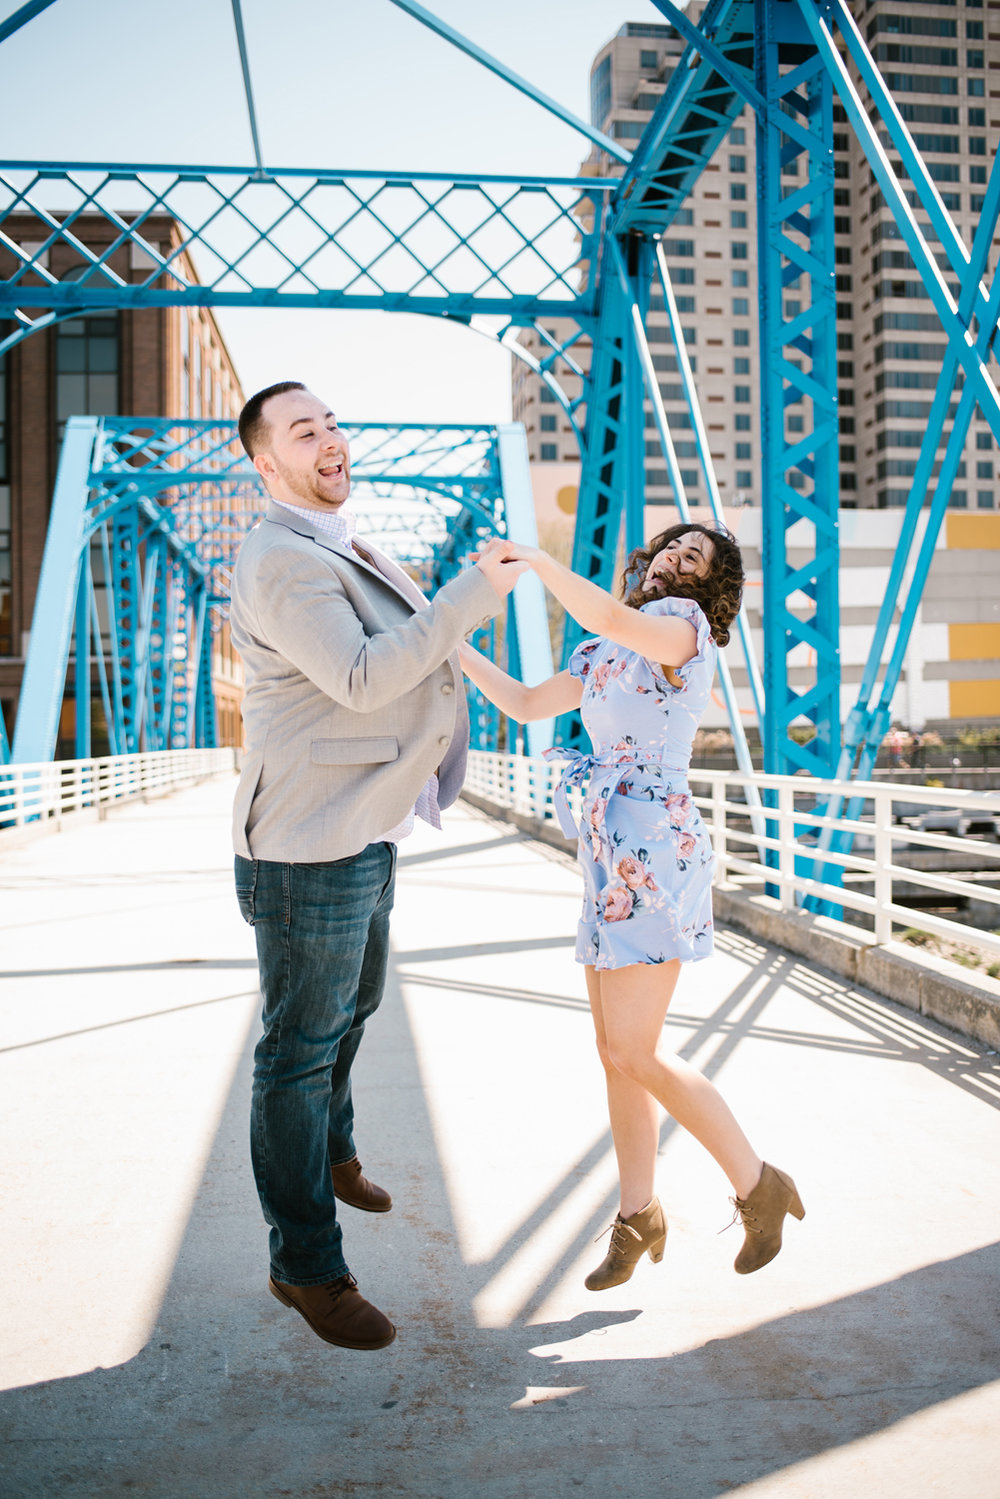 downtown-grand-rapids-michigan-engagement-photographer-spring-sydney-marie (150).jpg